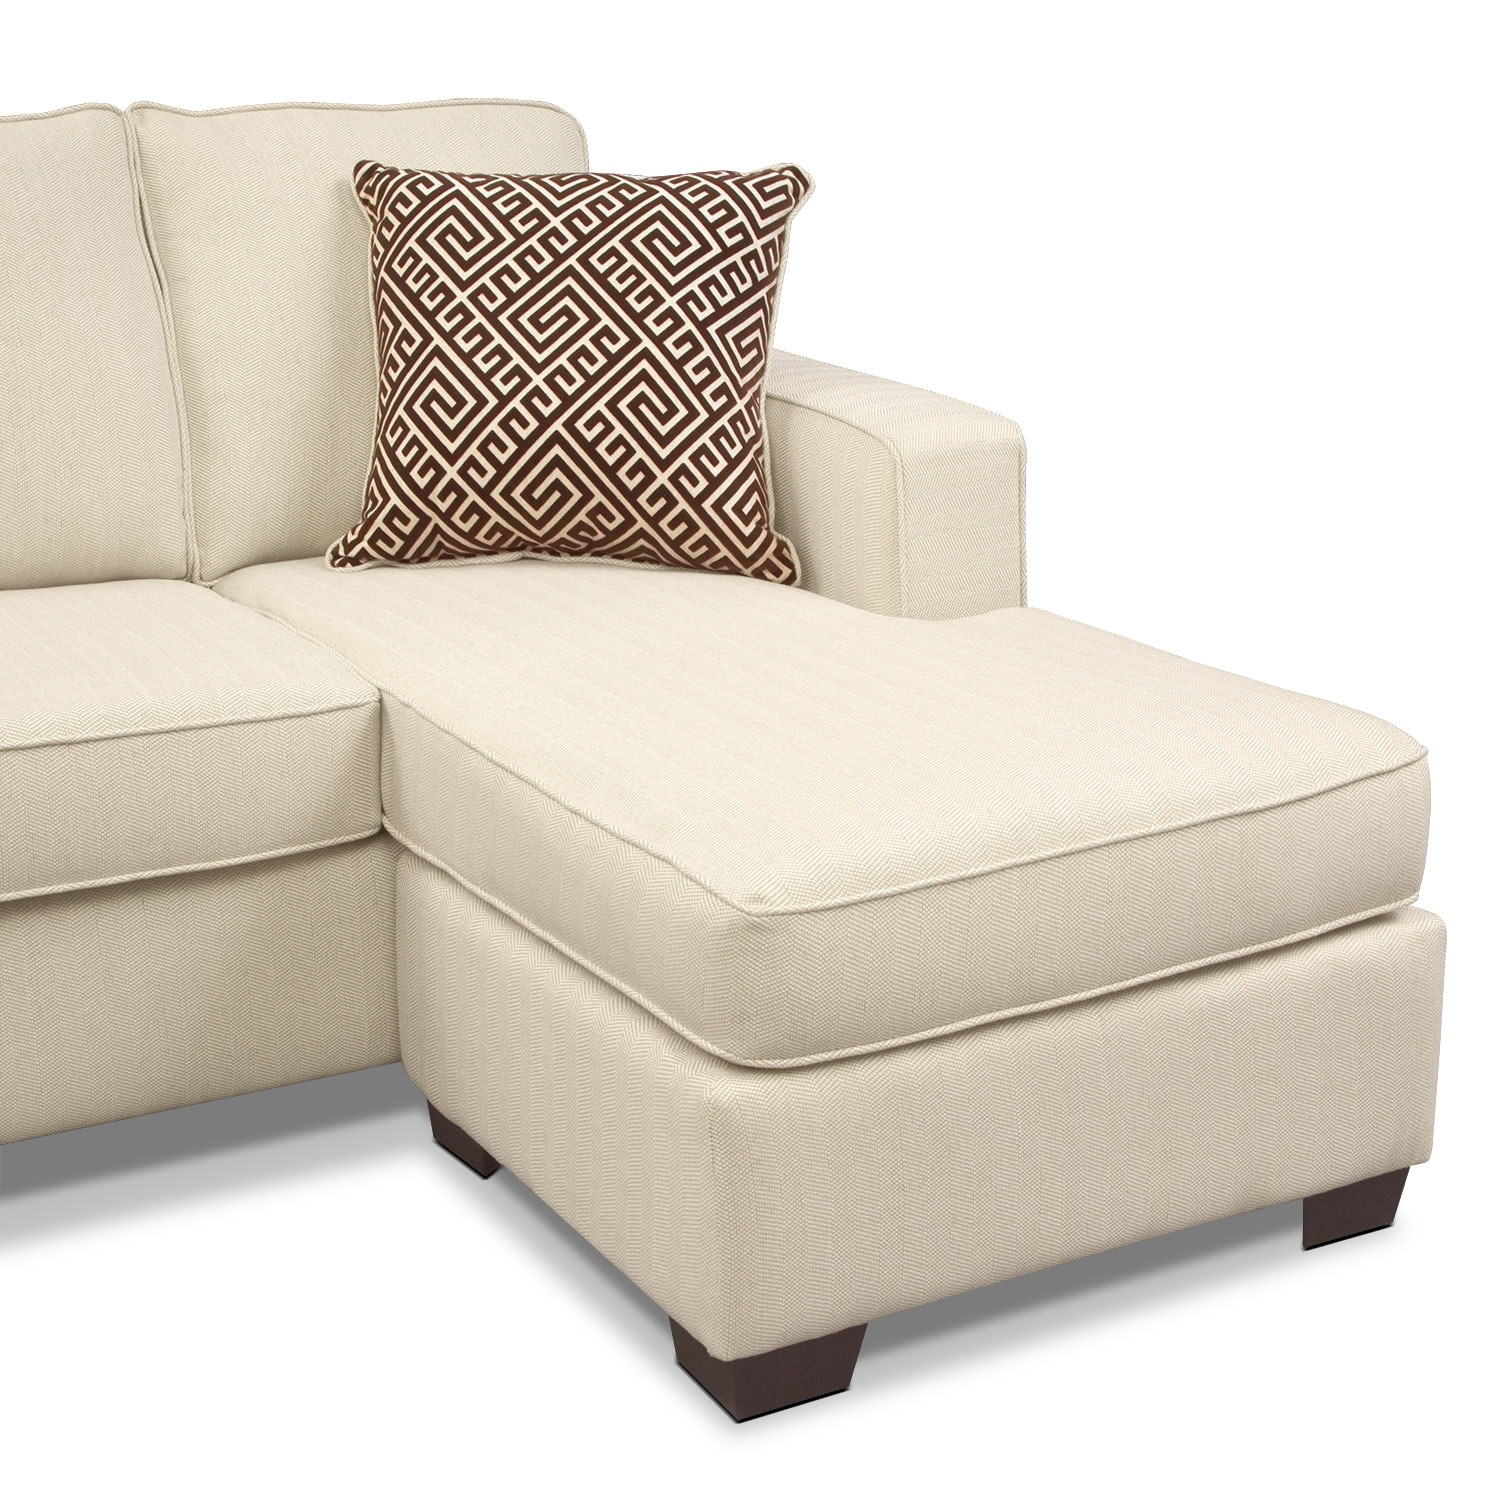 Sterling innerspring sleeper sofa with chaise beige for Beige sofa with chaise